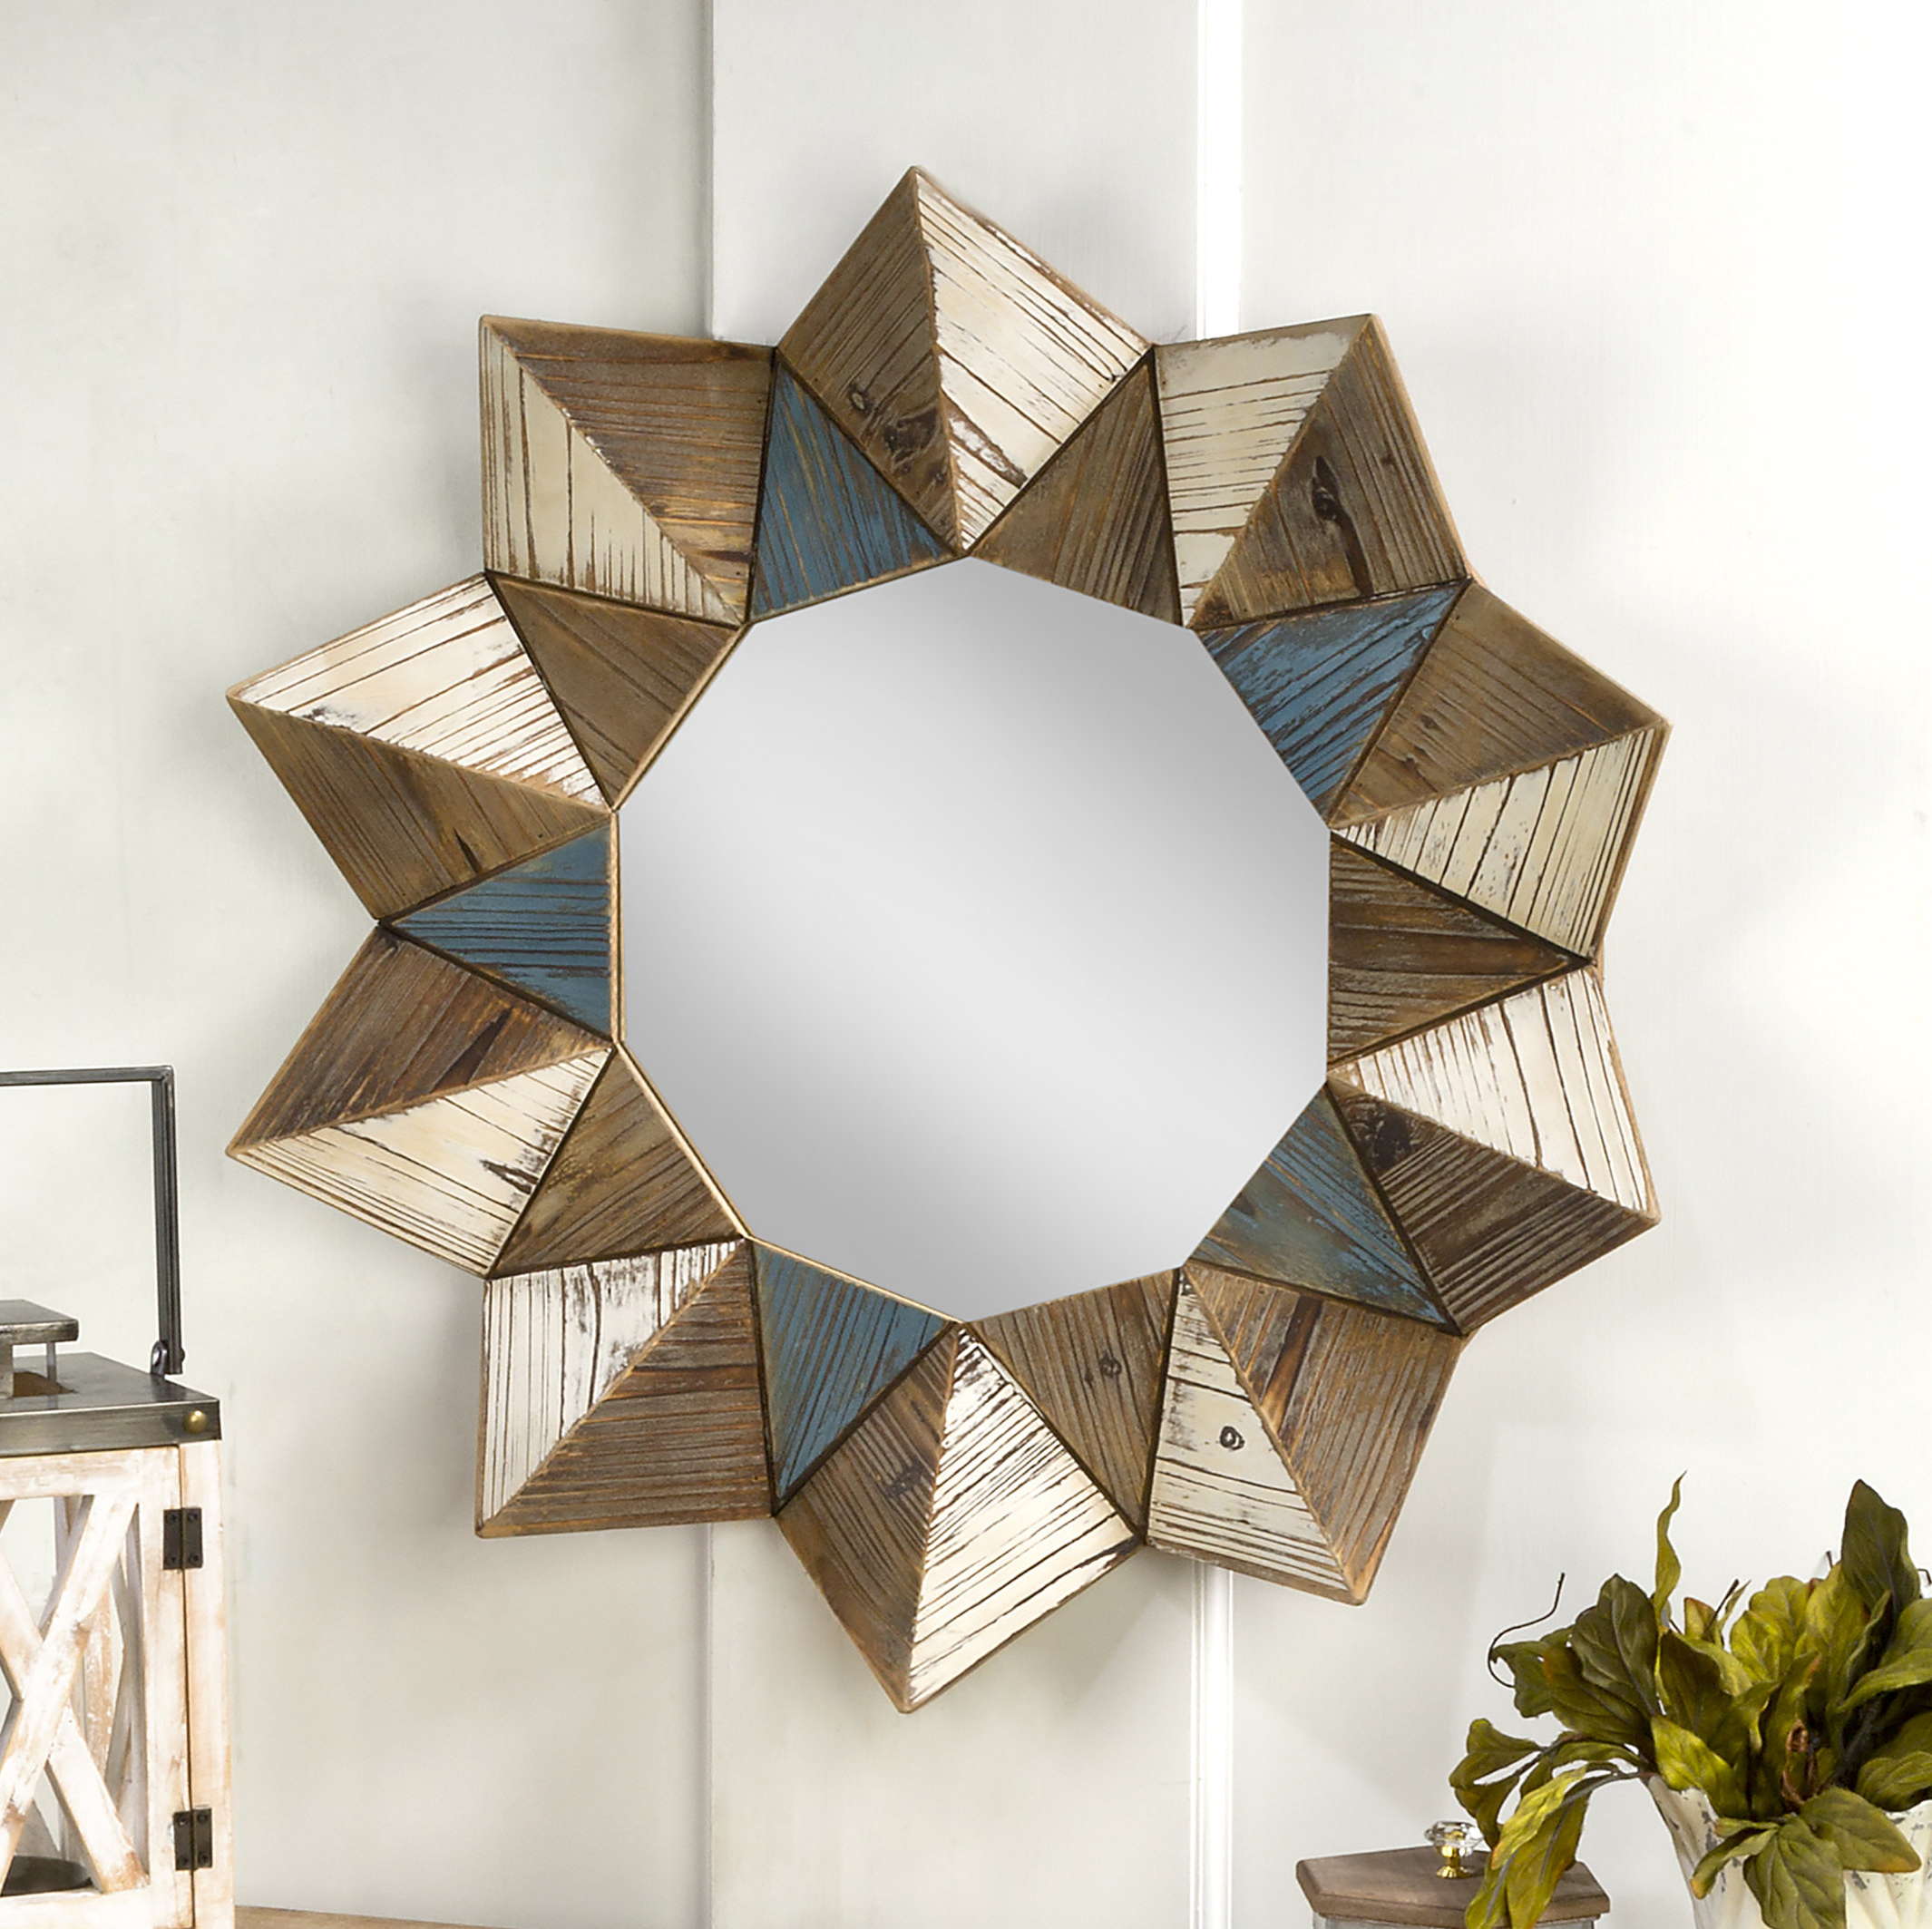 Ernest Geometric Eclectic Wall Accent Mirror Pertaining To Well Known Geometric Wall Mirrors (View 18 of 20)